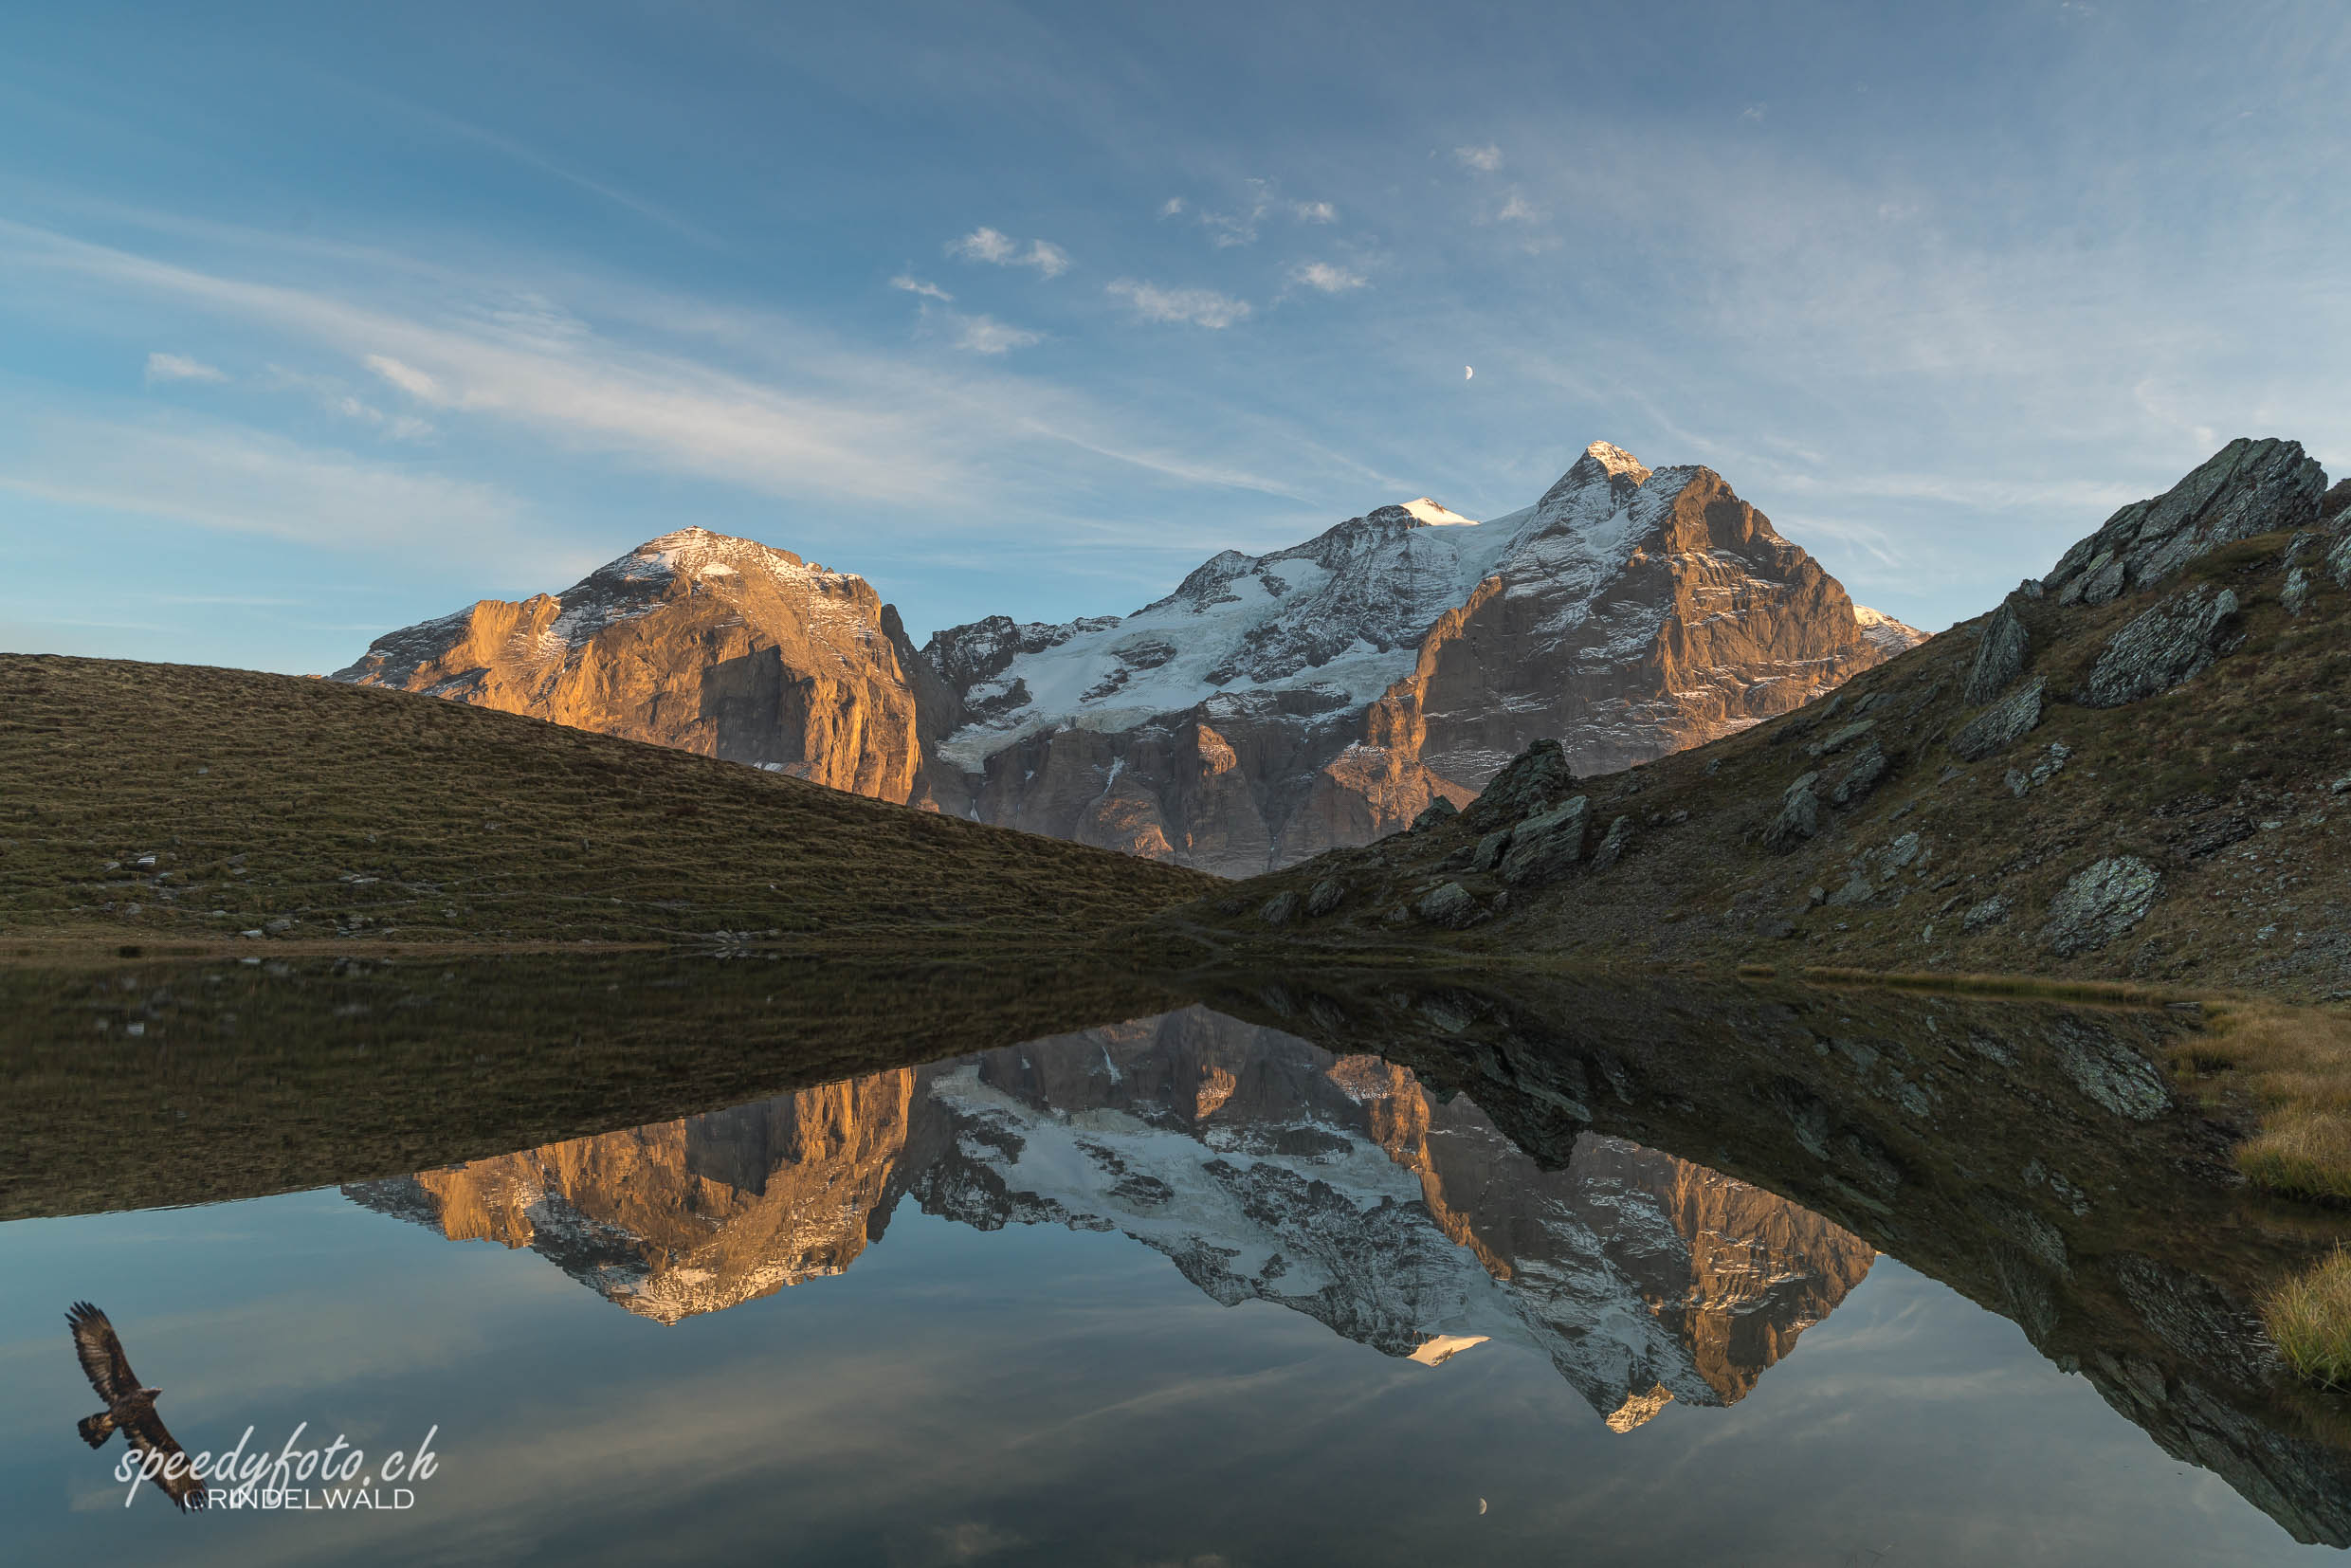 Reflection - Hornseeli - Wetterhorn